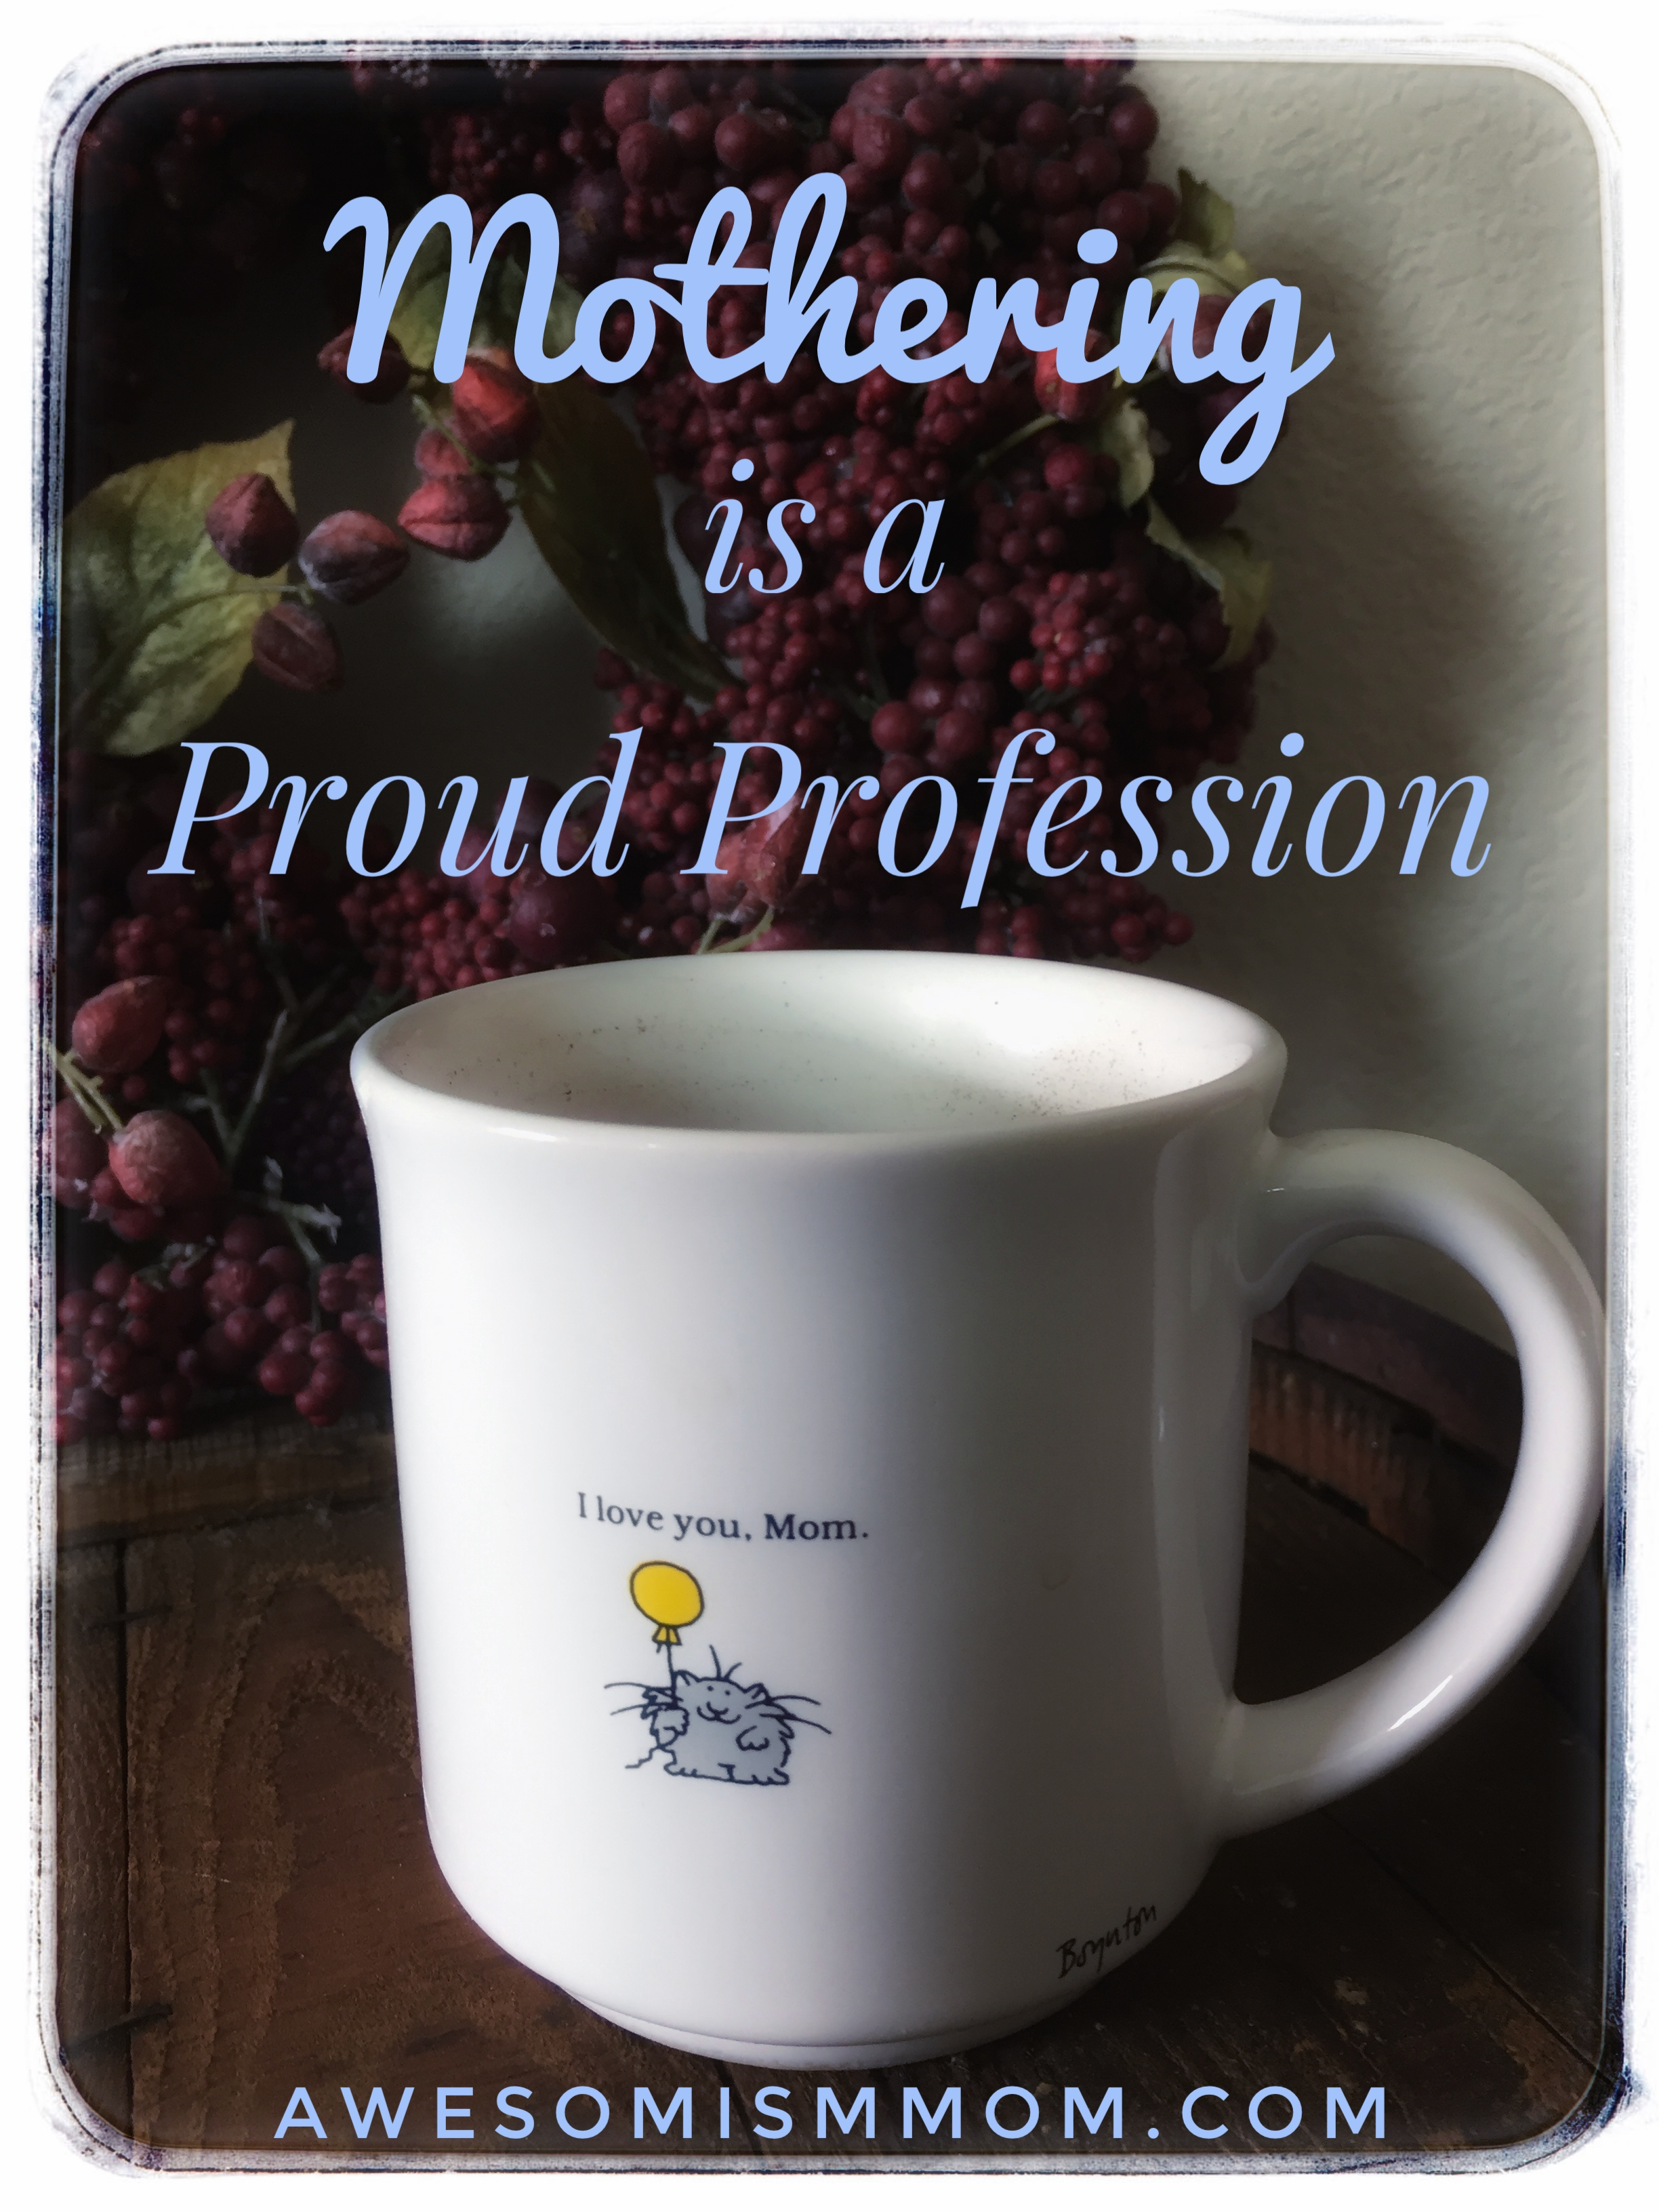 Sunday Throwback: A Proud Profession